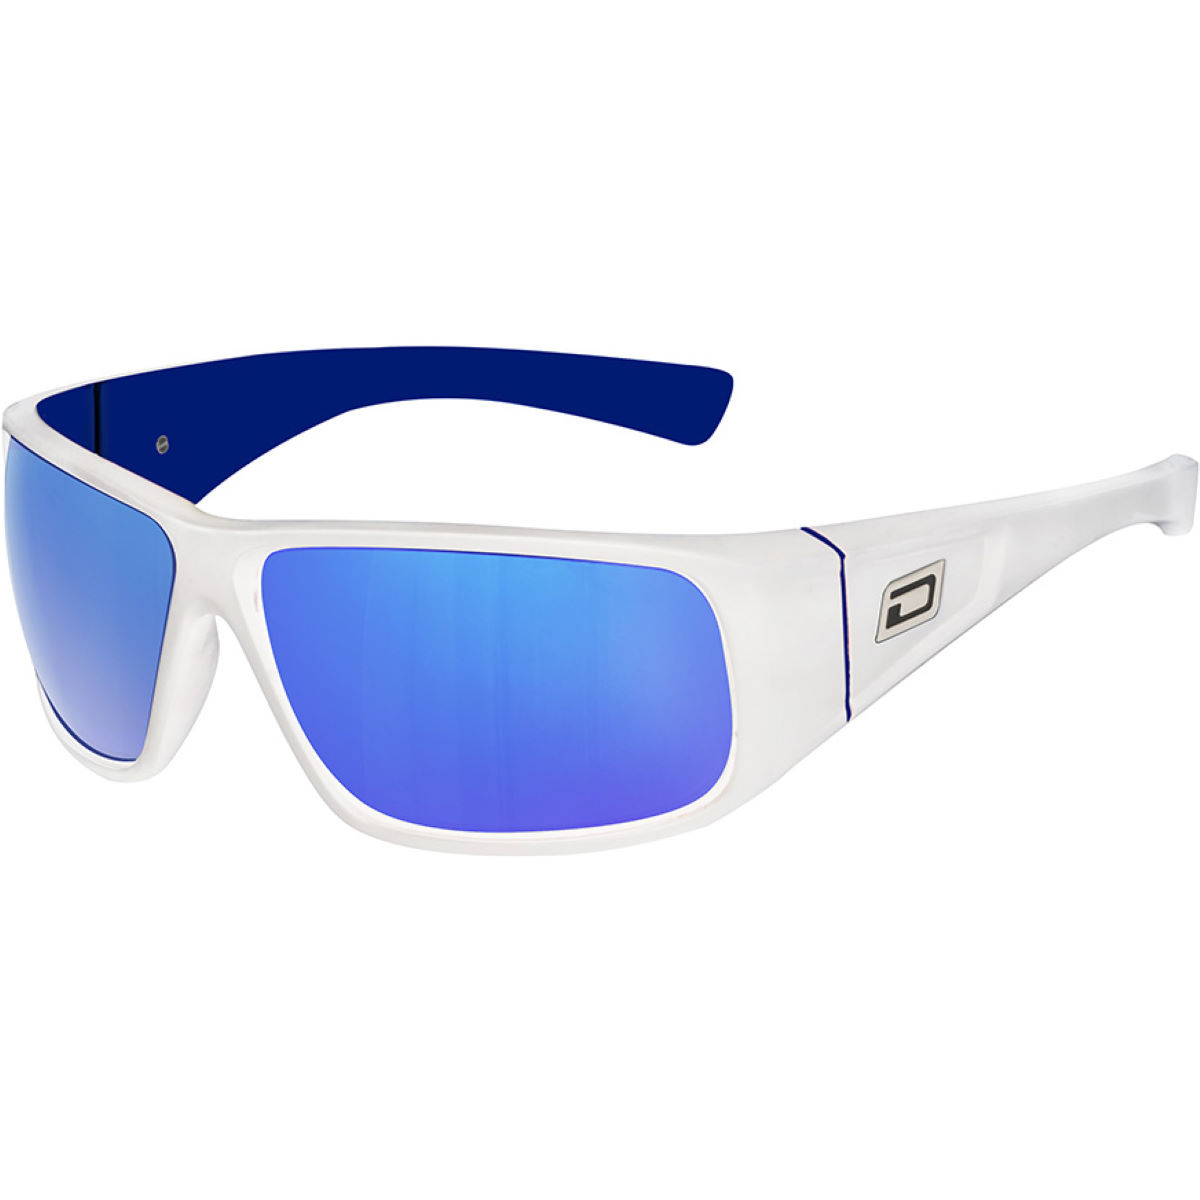 Dirty Dog Ultra Polarised Sunglasses - Gafas de sol